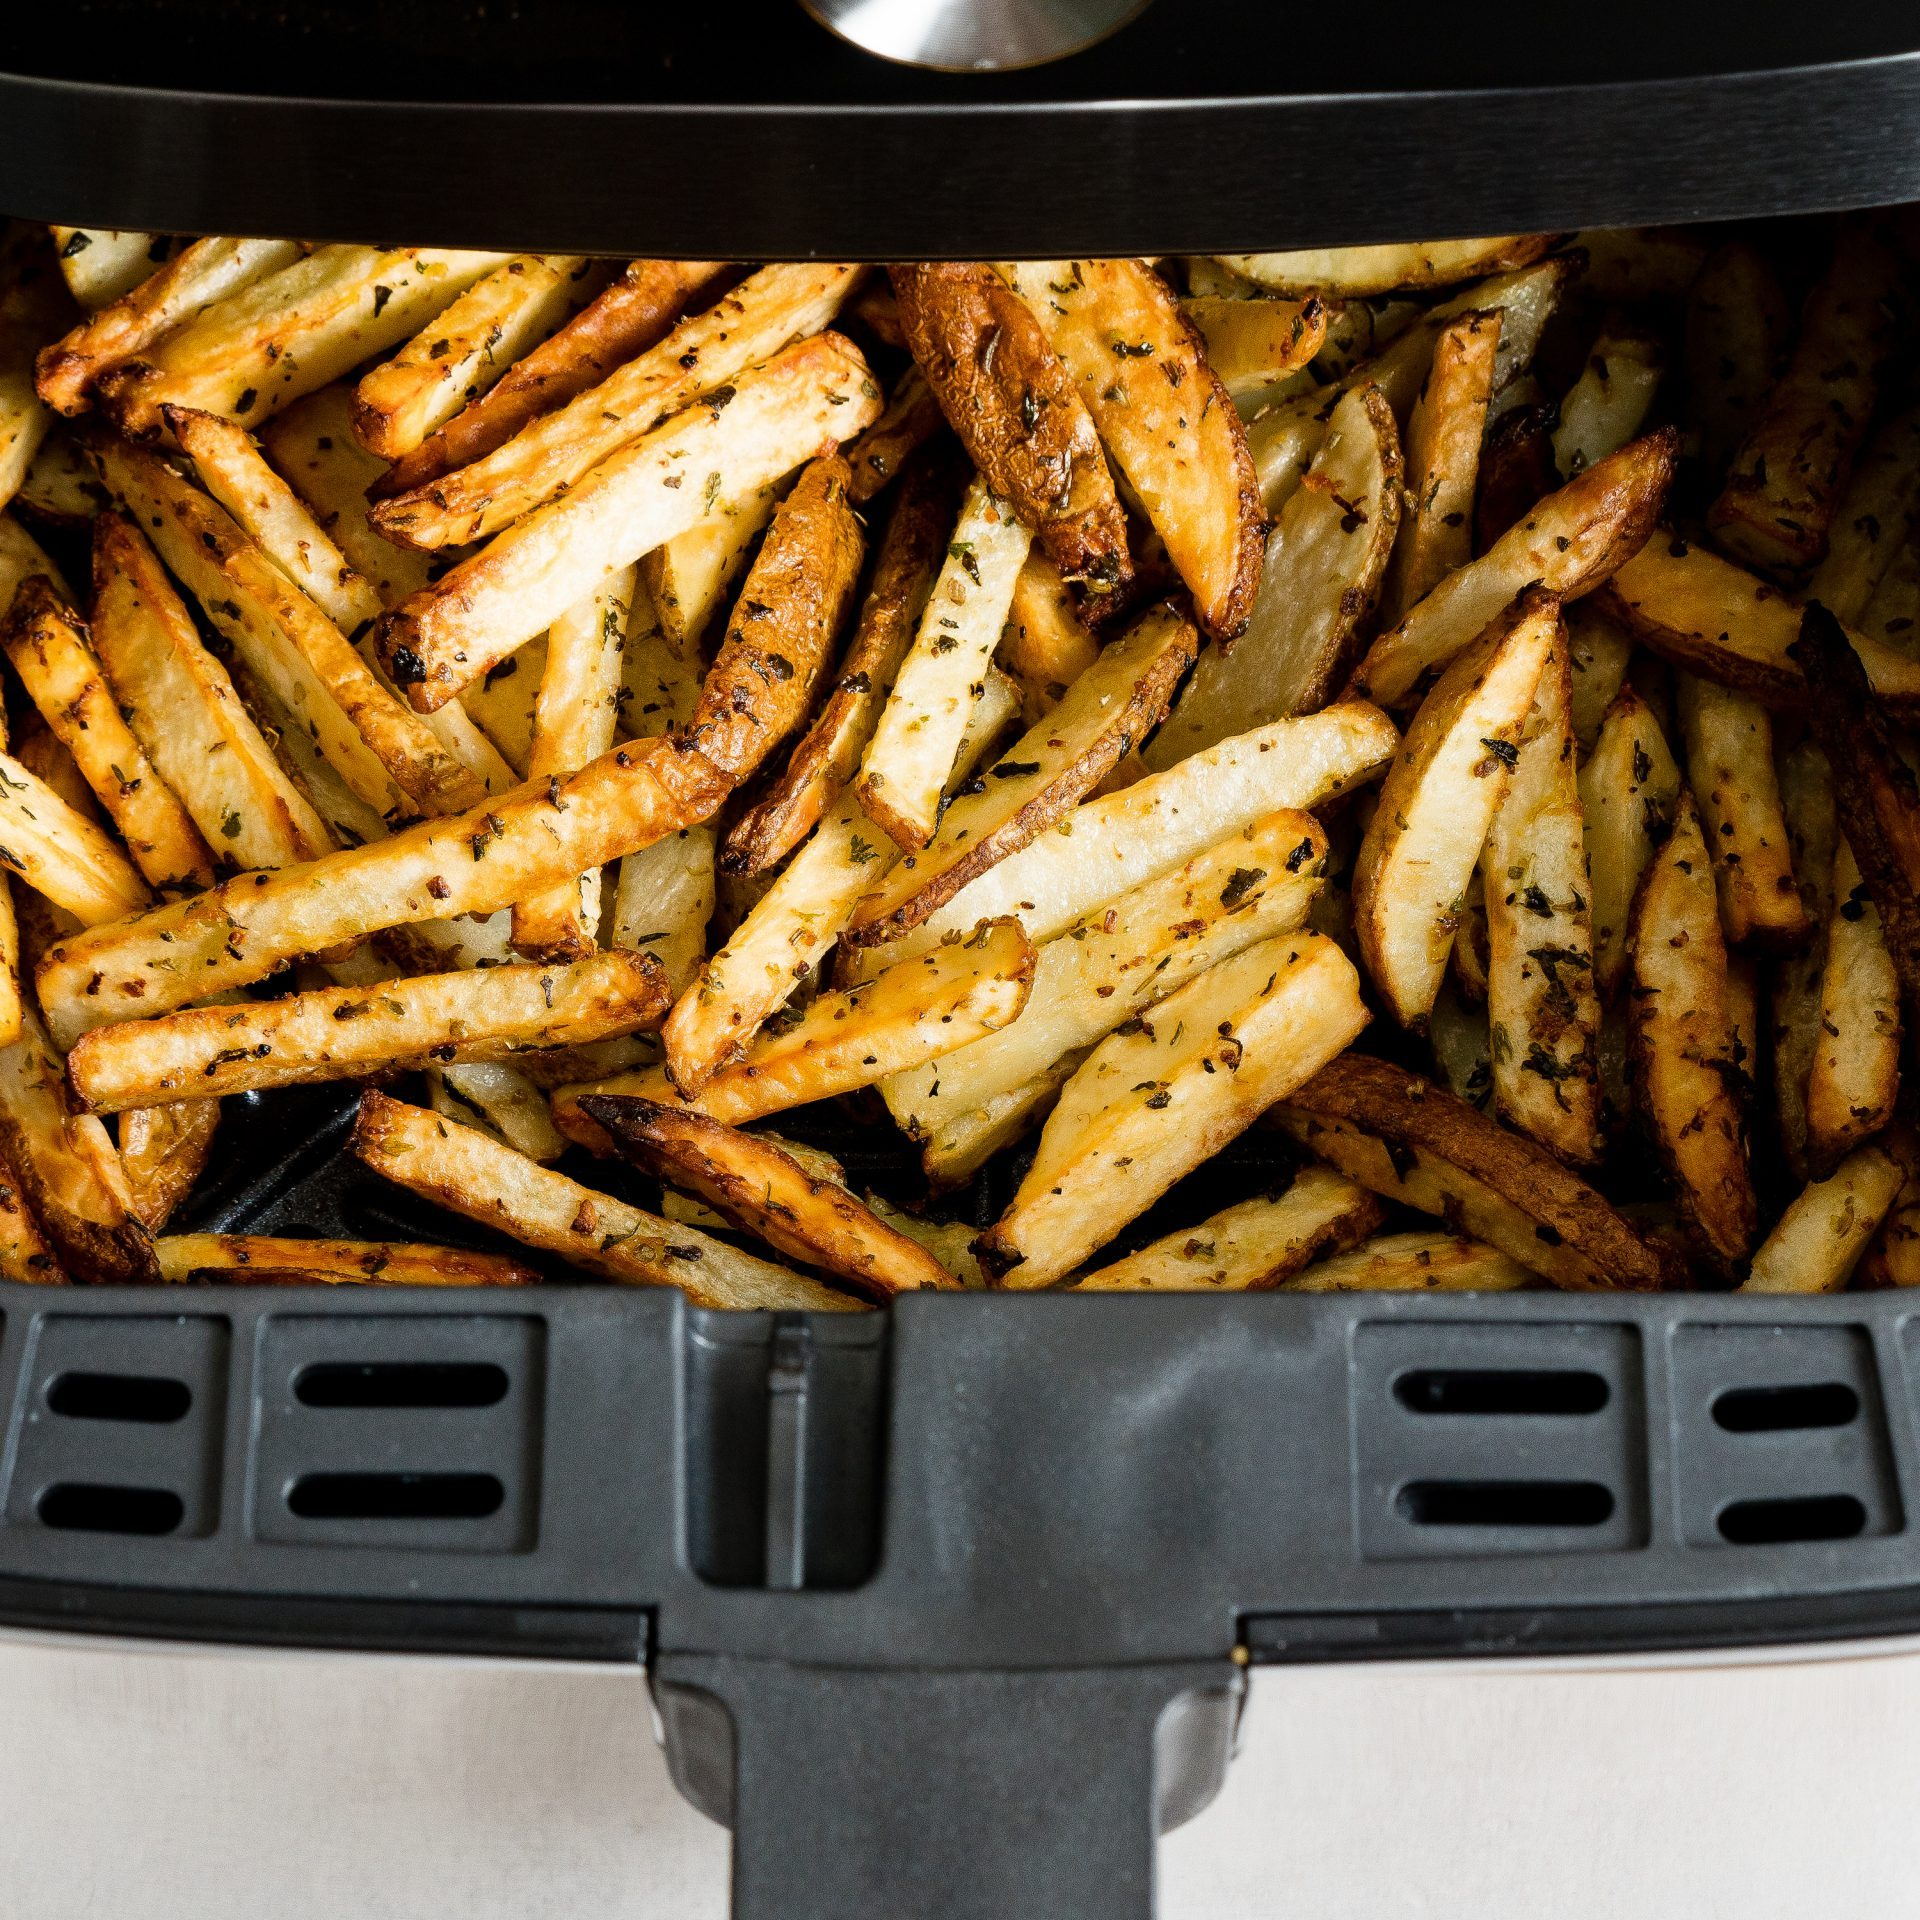 picture of crispy fries in an air fryer